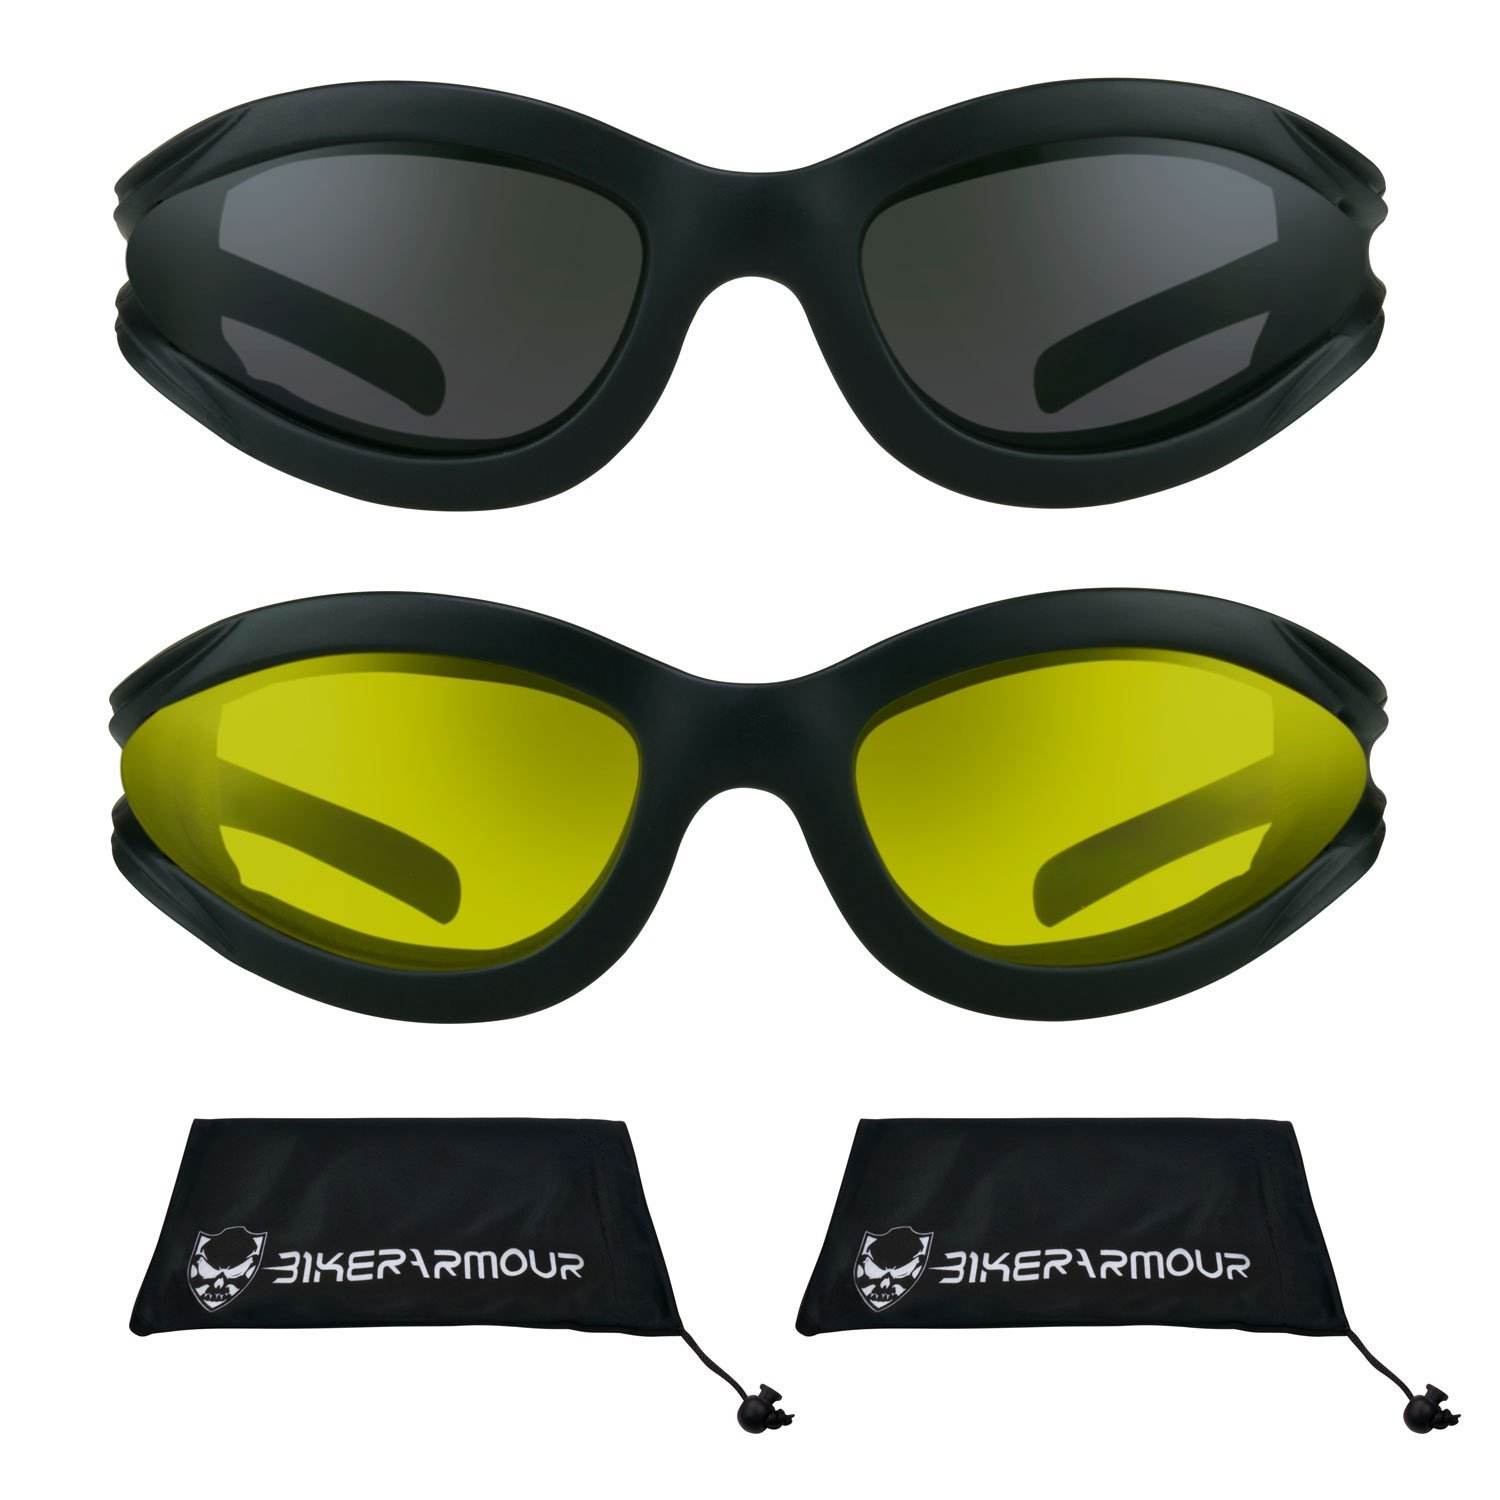 552fc8b473 Get Quotations · Motorcycle foam glasses with polycarbonate Smoke